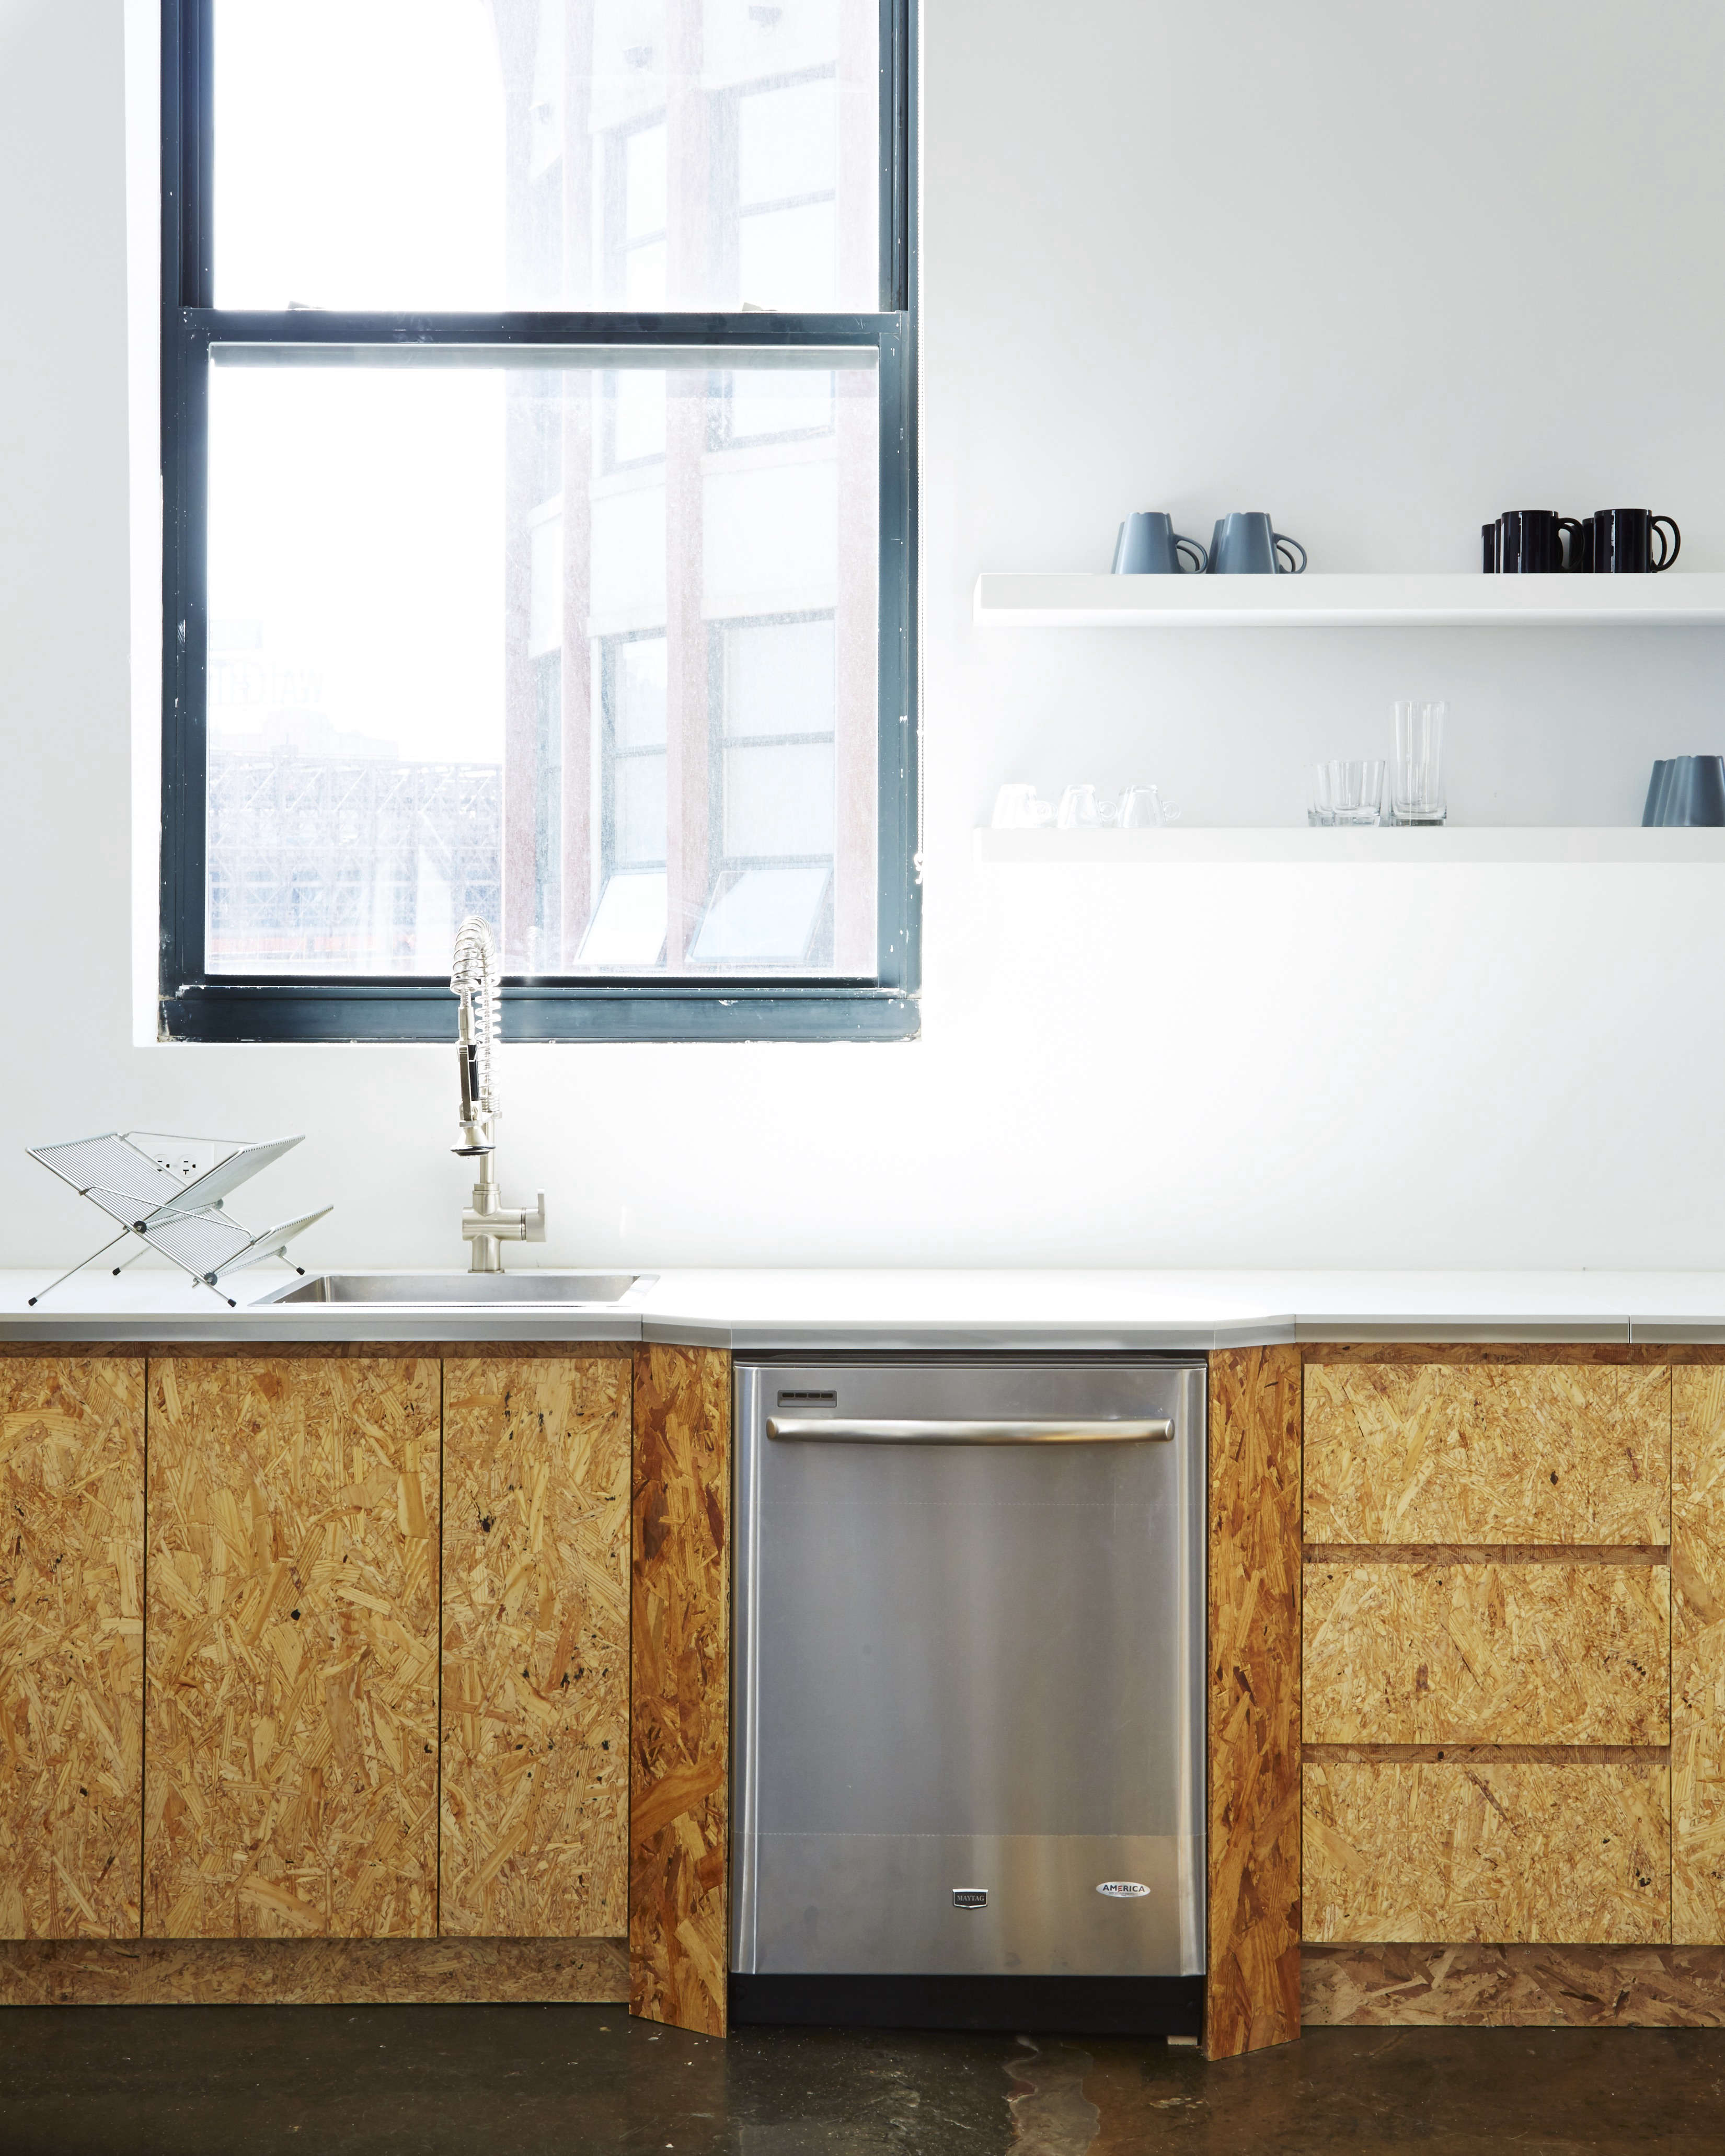 Table of Contents: The Digital Home | Remodelista: Sourcebook for ...